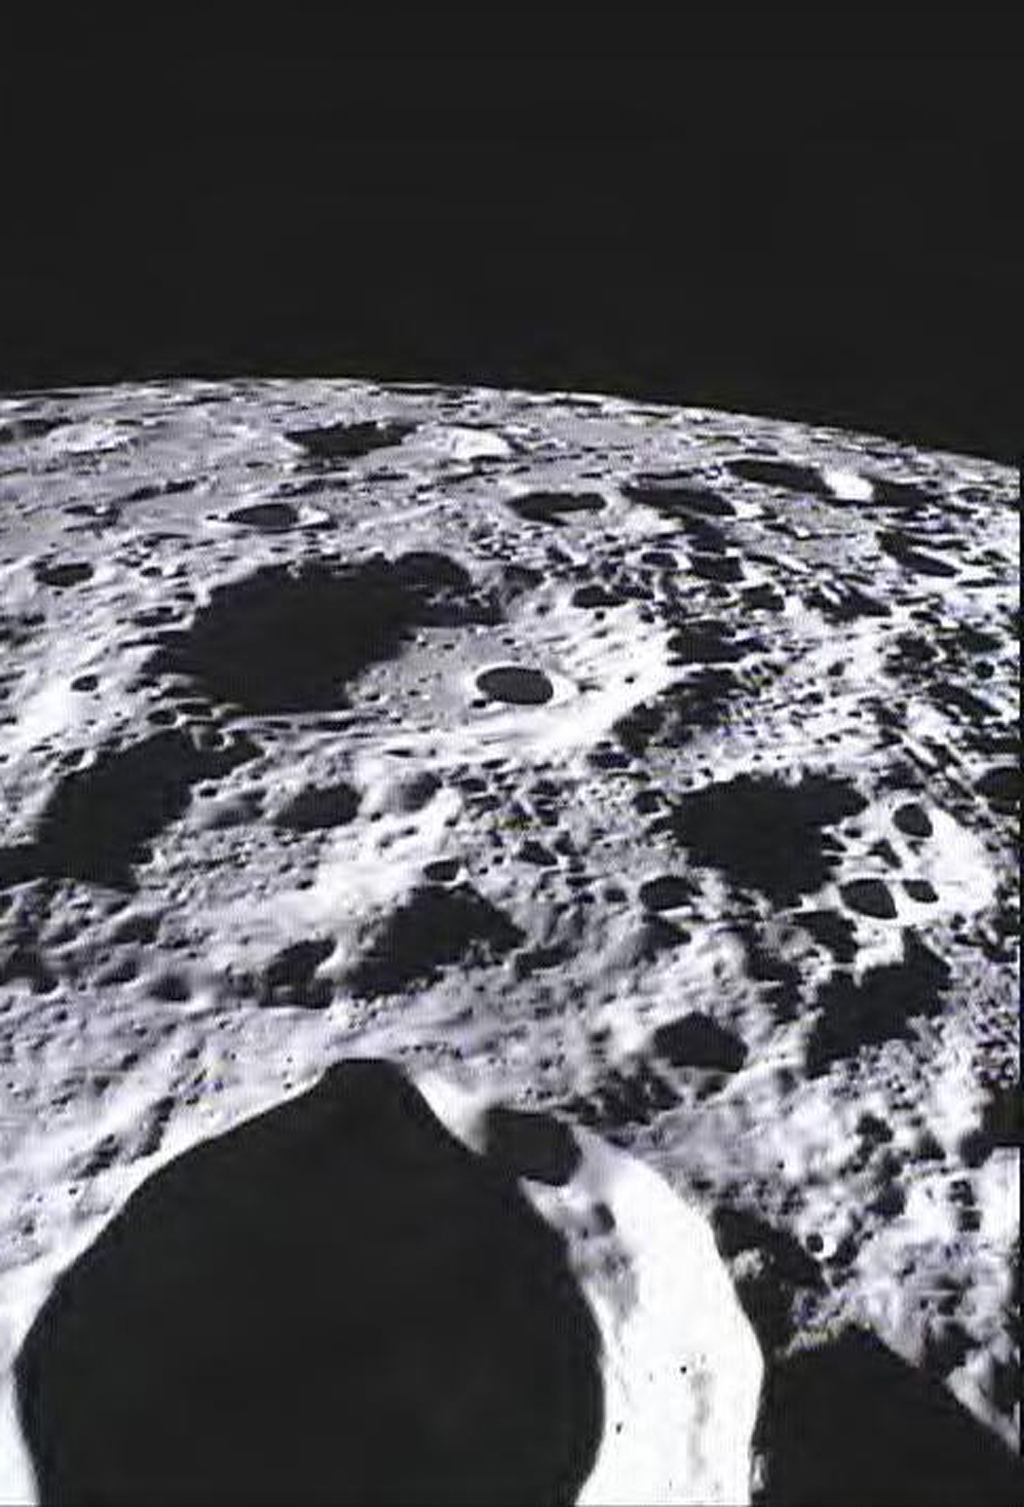 Space Images | Far Side of Moon Imaged by MoonKAM